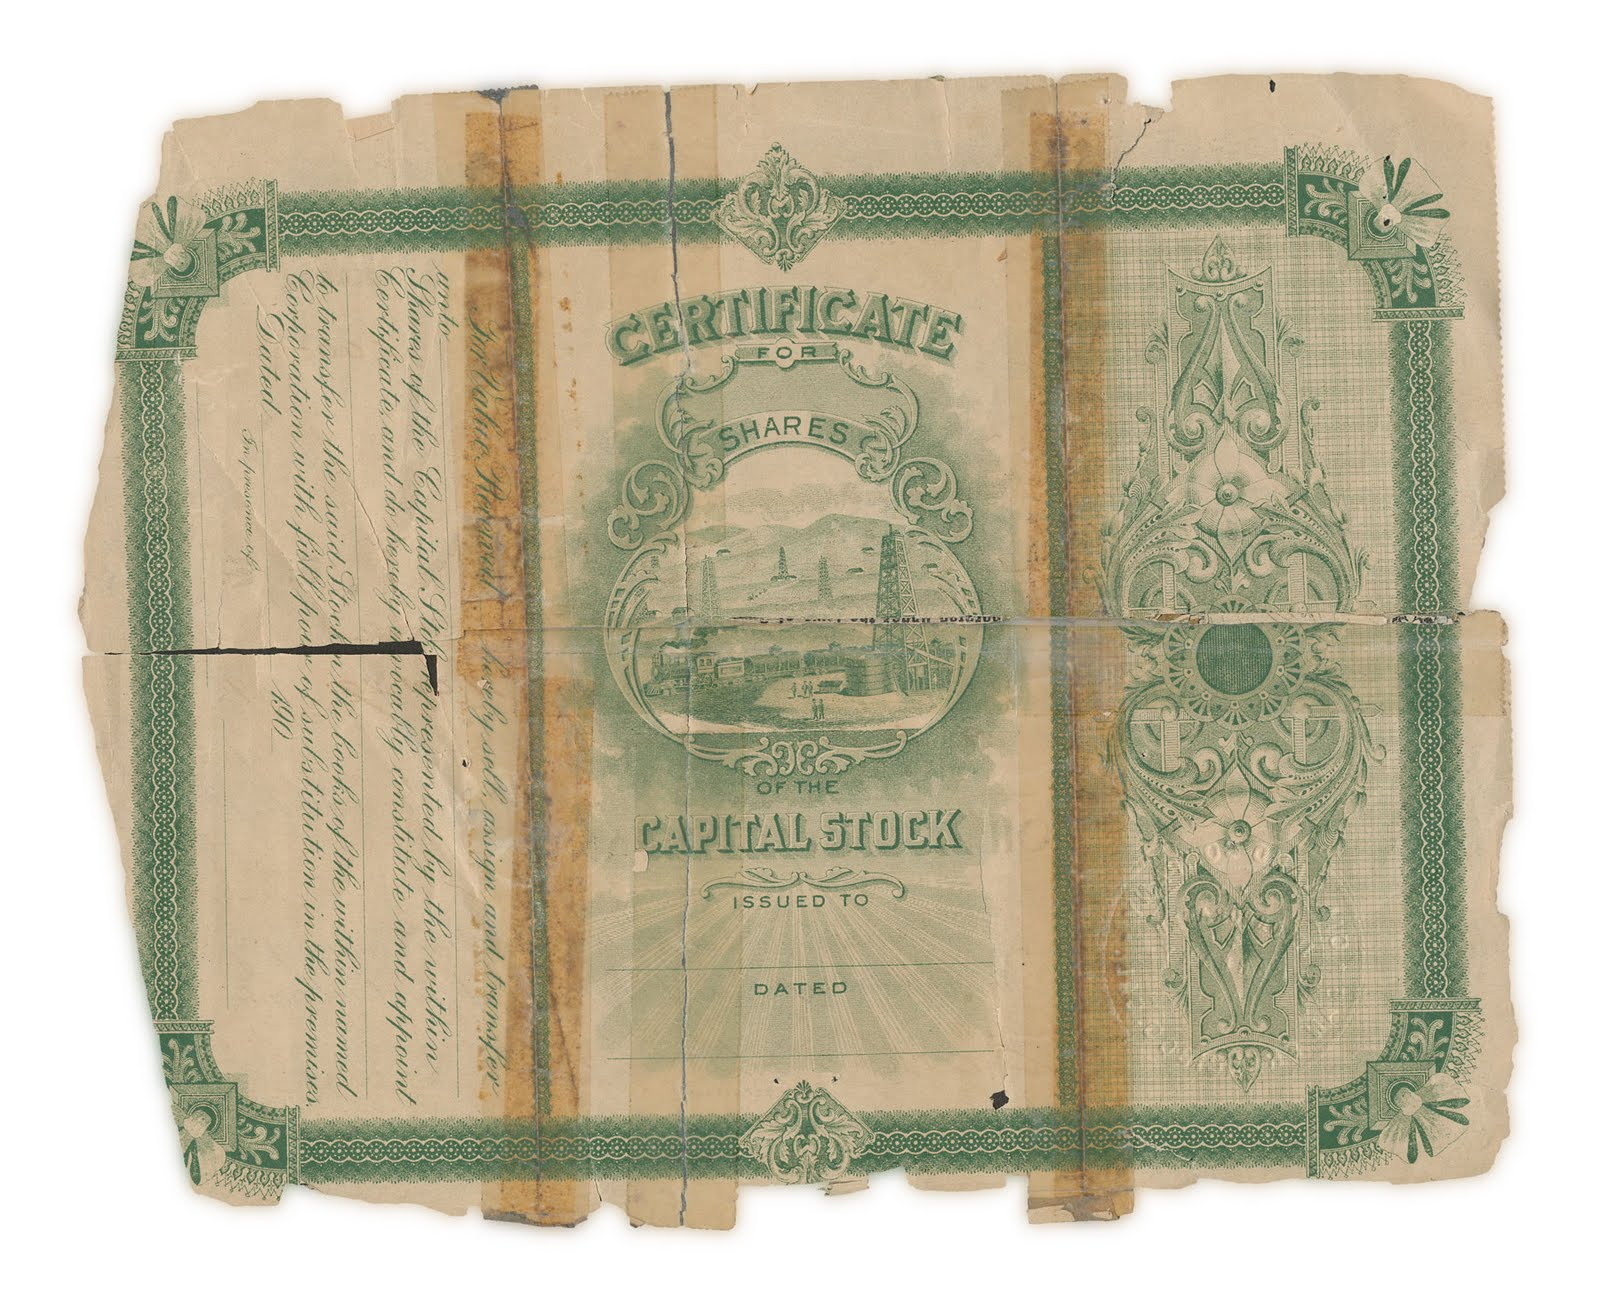 Oil and Land Company, 100 shares, reverse side